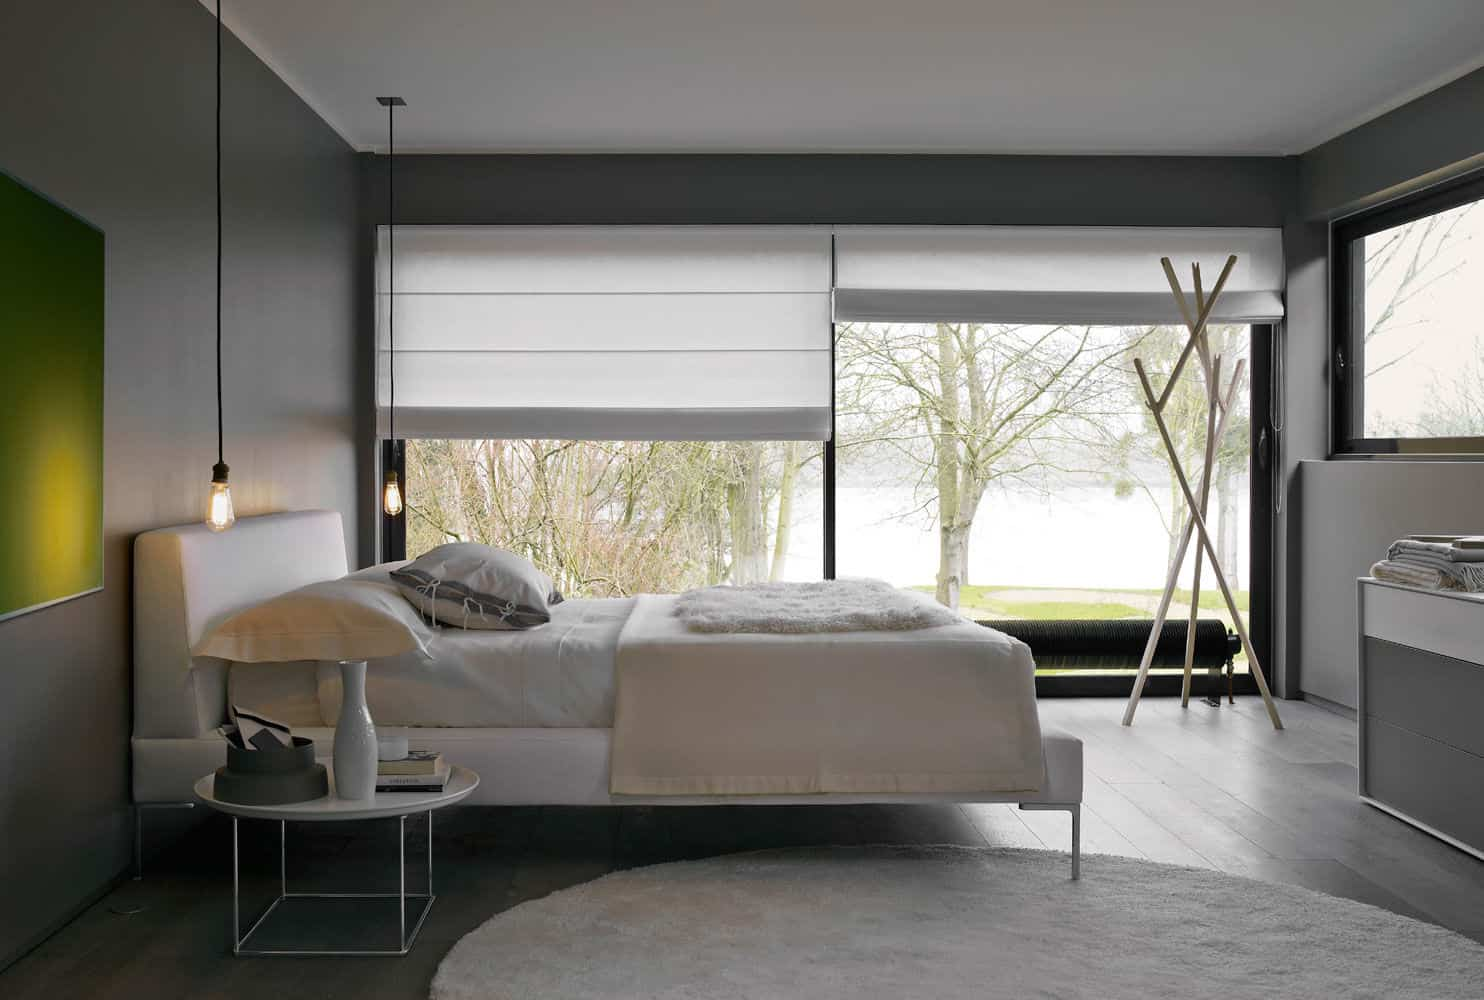 50 Modern Bedroom Design Ideas - Moderne Einrichtungsideen